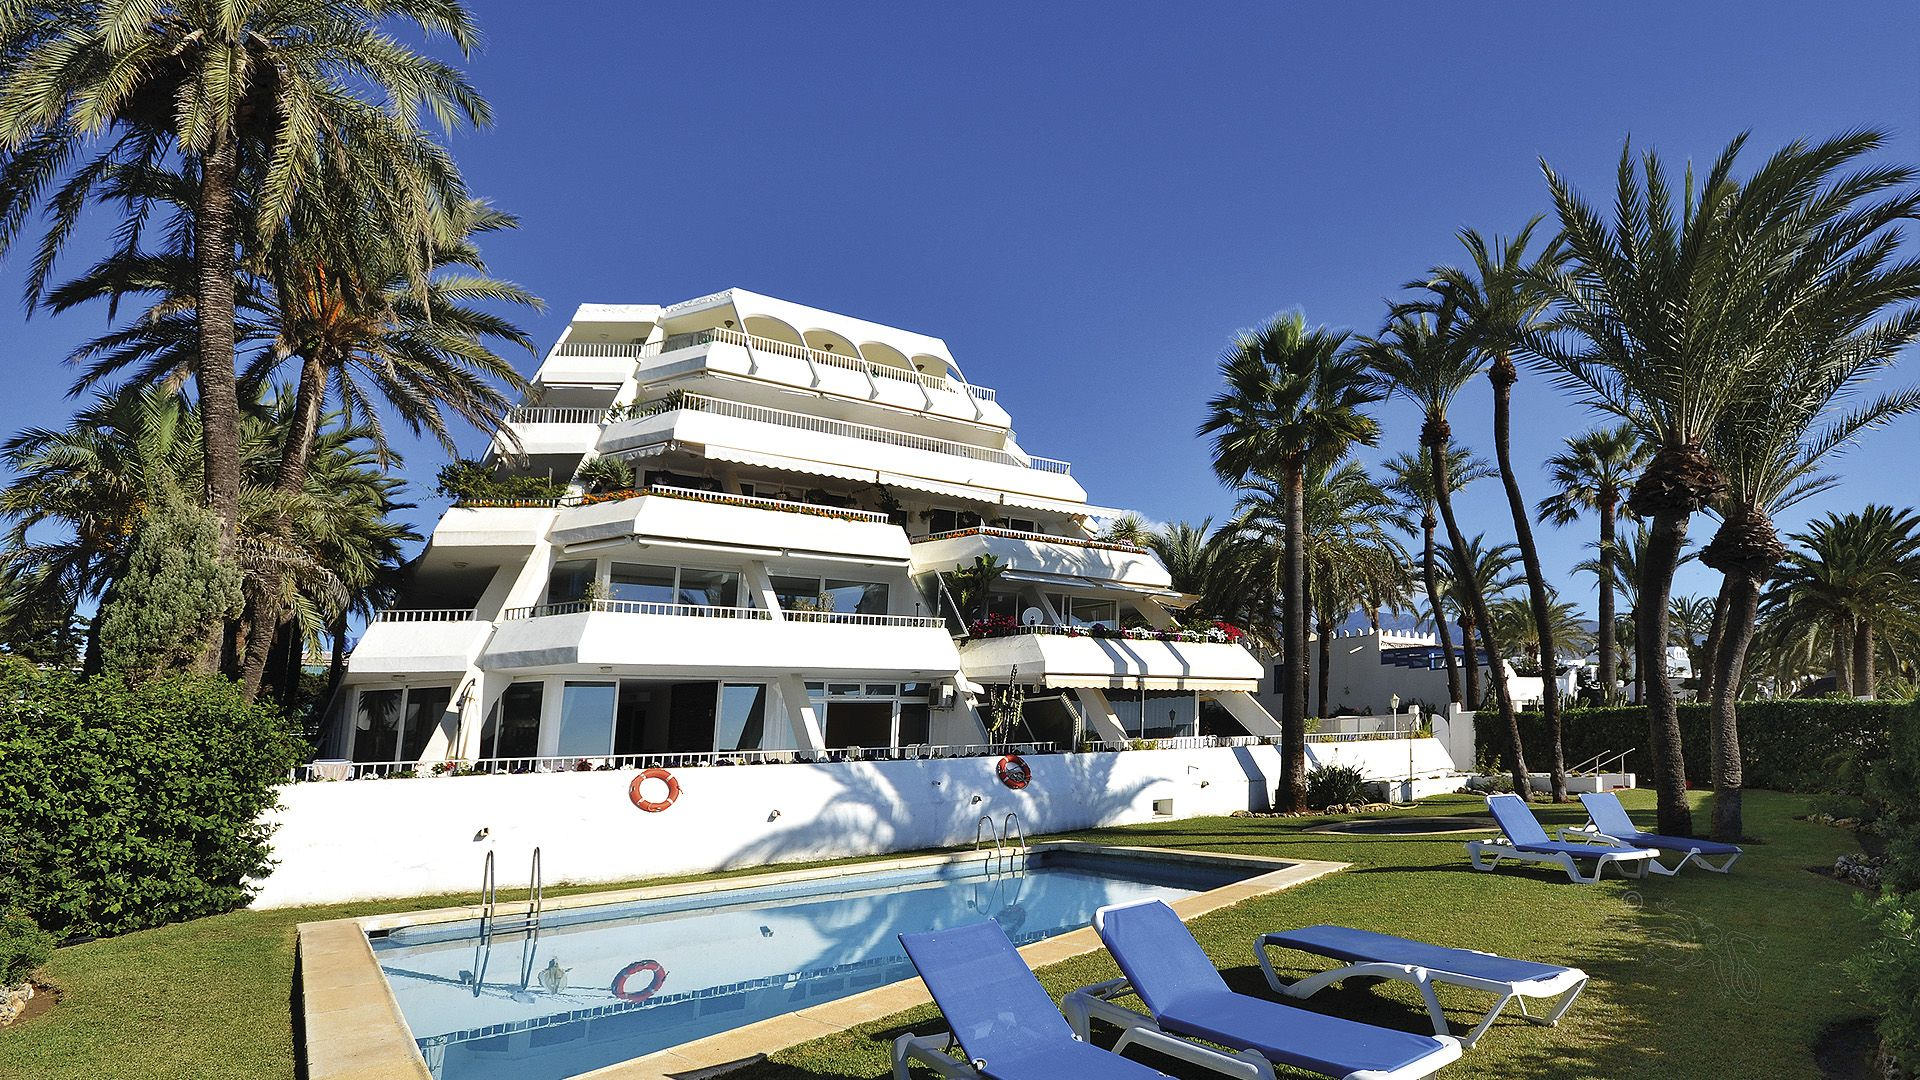 Apartment Marbella Immobilien - Finest Marbella